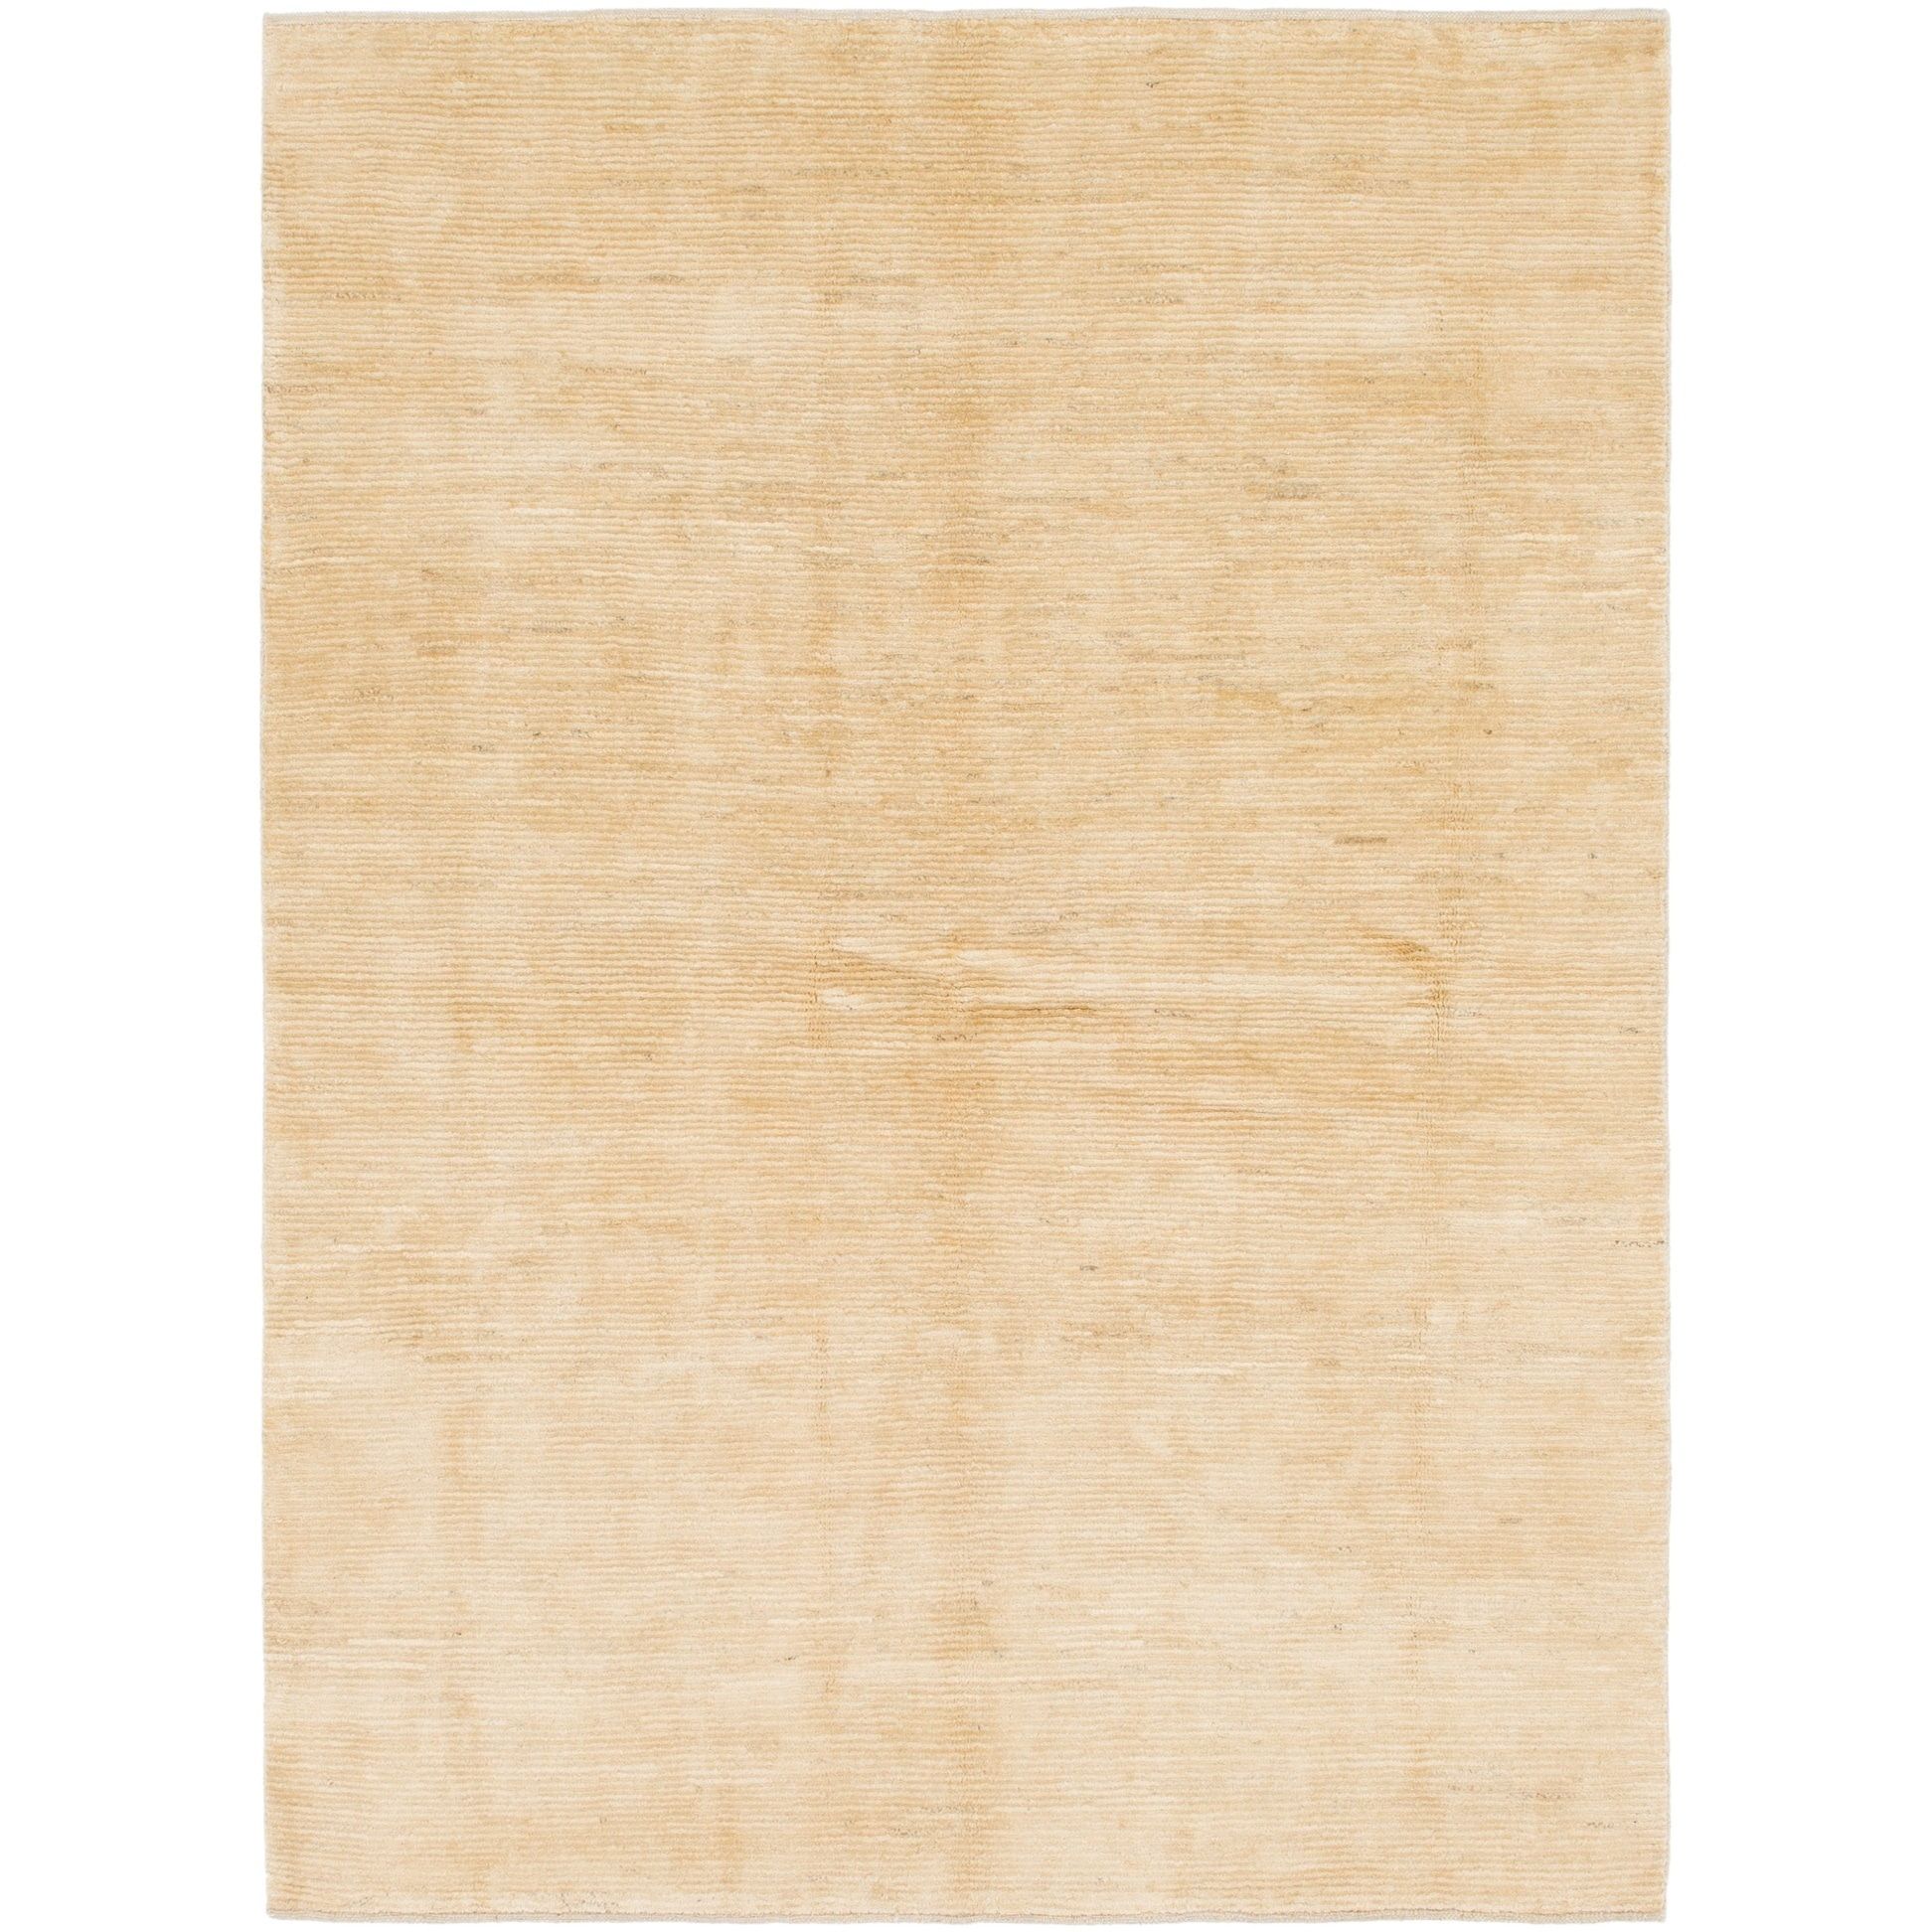 Hand Knotted Kashkuli Gabbeh Wool Area Rug - 5 7 x 7 7 (Cream - 5 7 x 7 7)